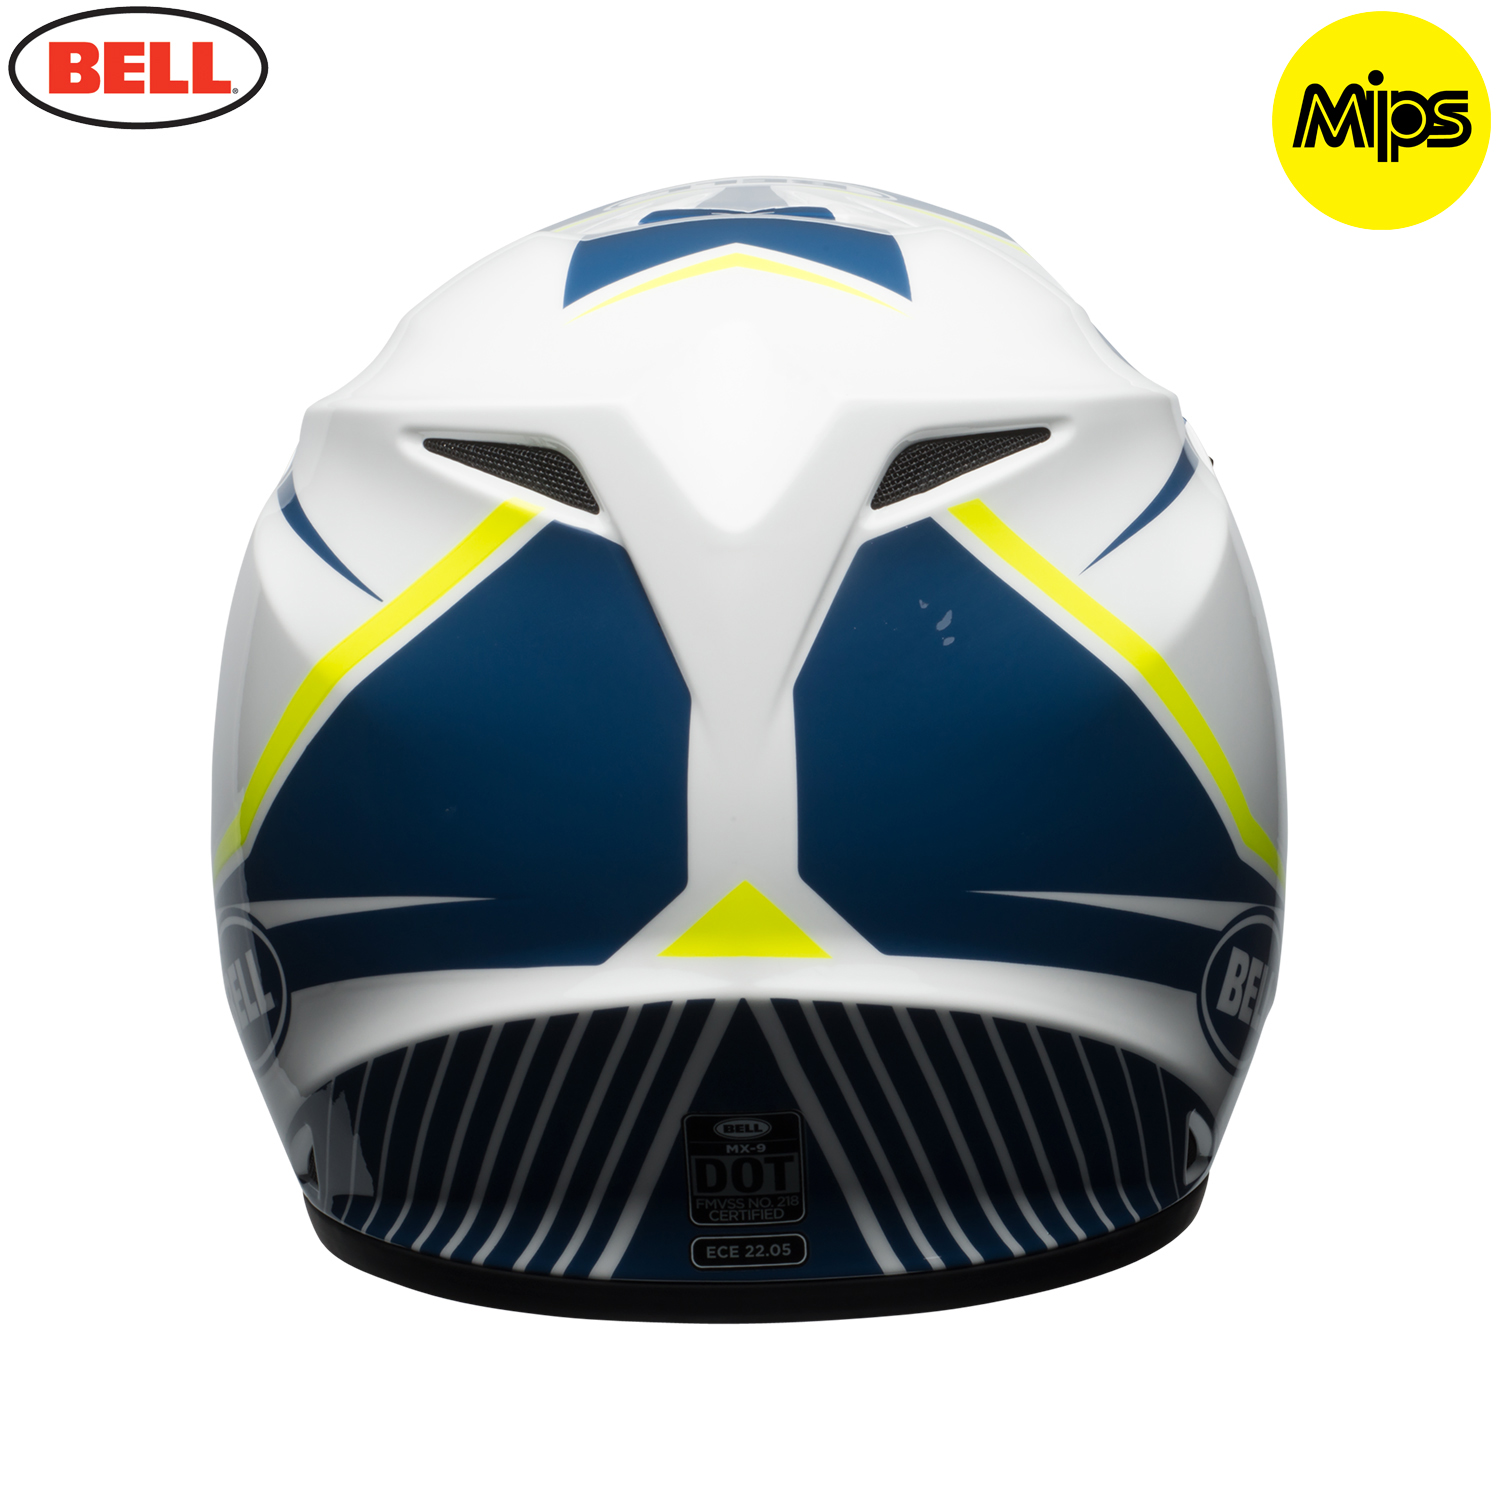 2018 bell mx 9 mips helmet torch white blue yellow. Black Bedroom Furniture Sets. Home Design Ideas